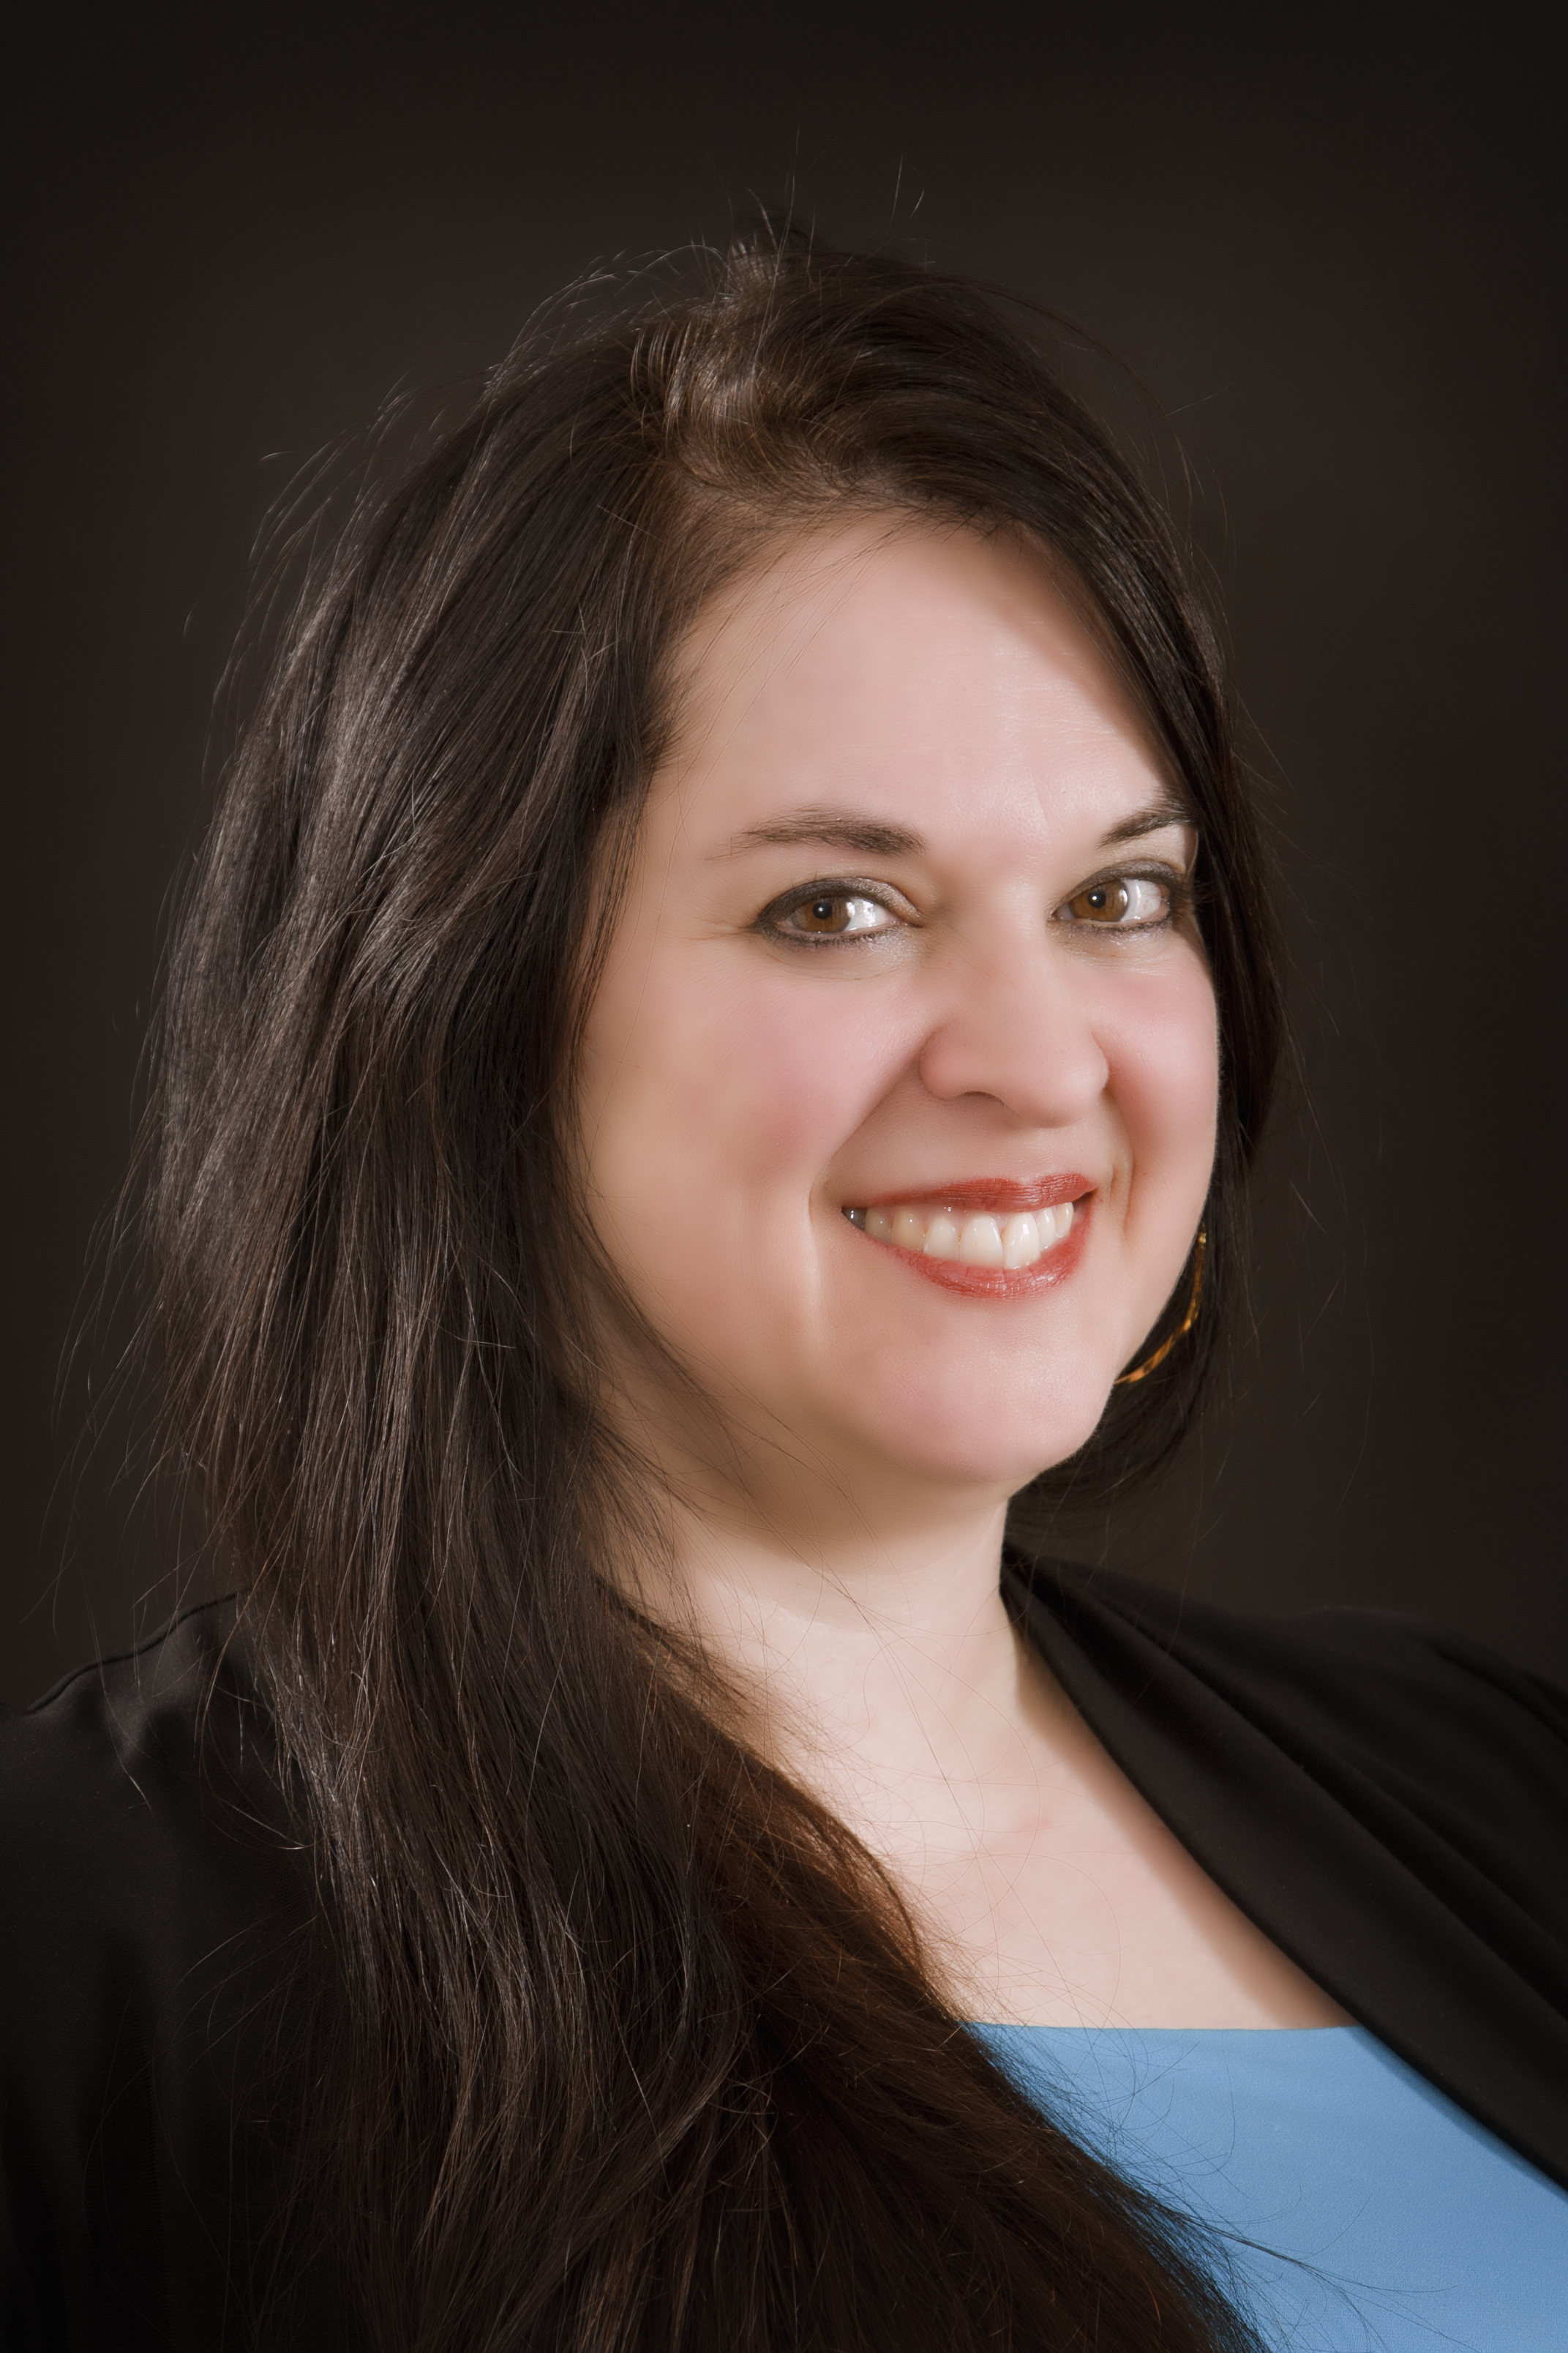 Catherine Saykaly-Stevens - The Networking Web - Social Media Consultant specializing in Fan Engagement and Target Audience Growth